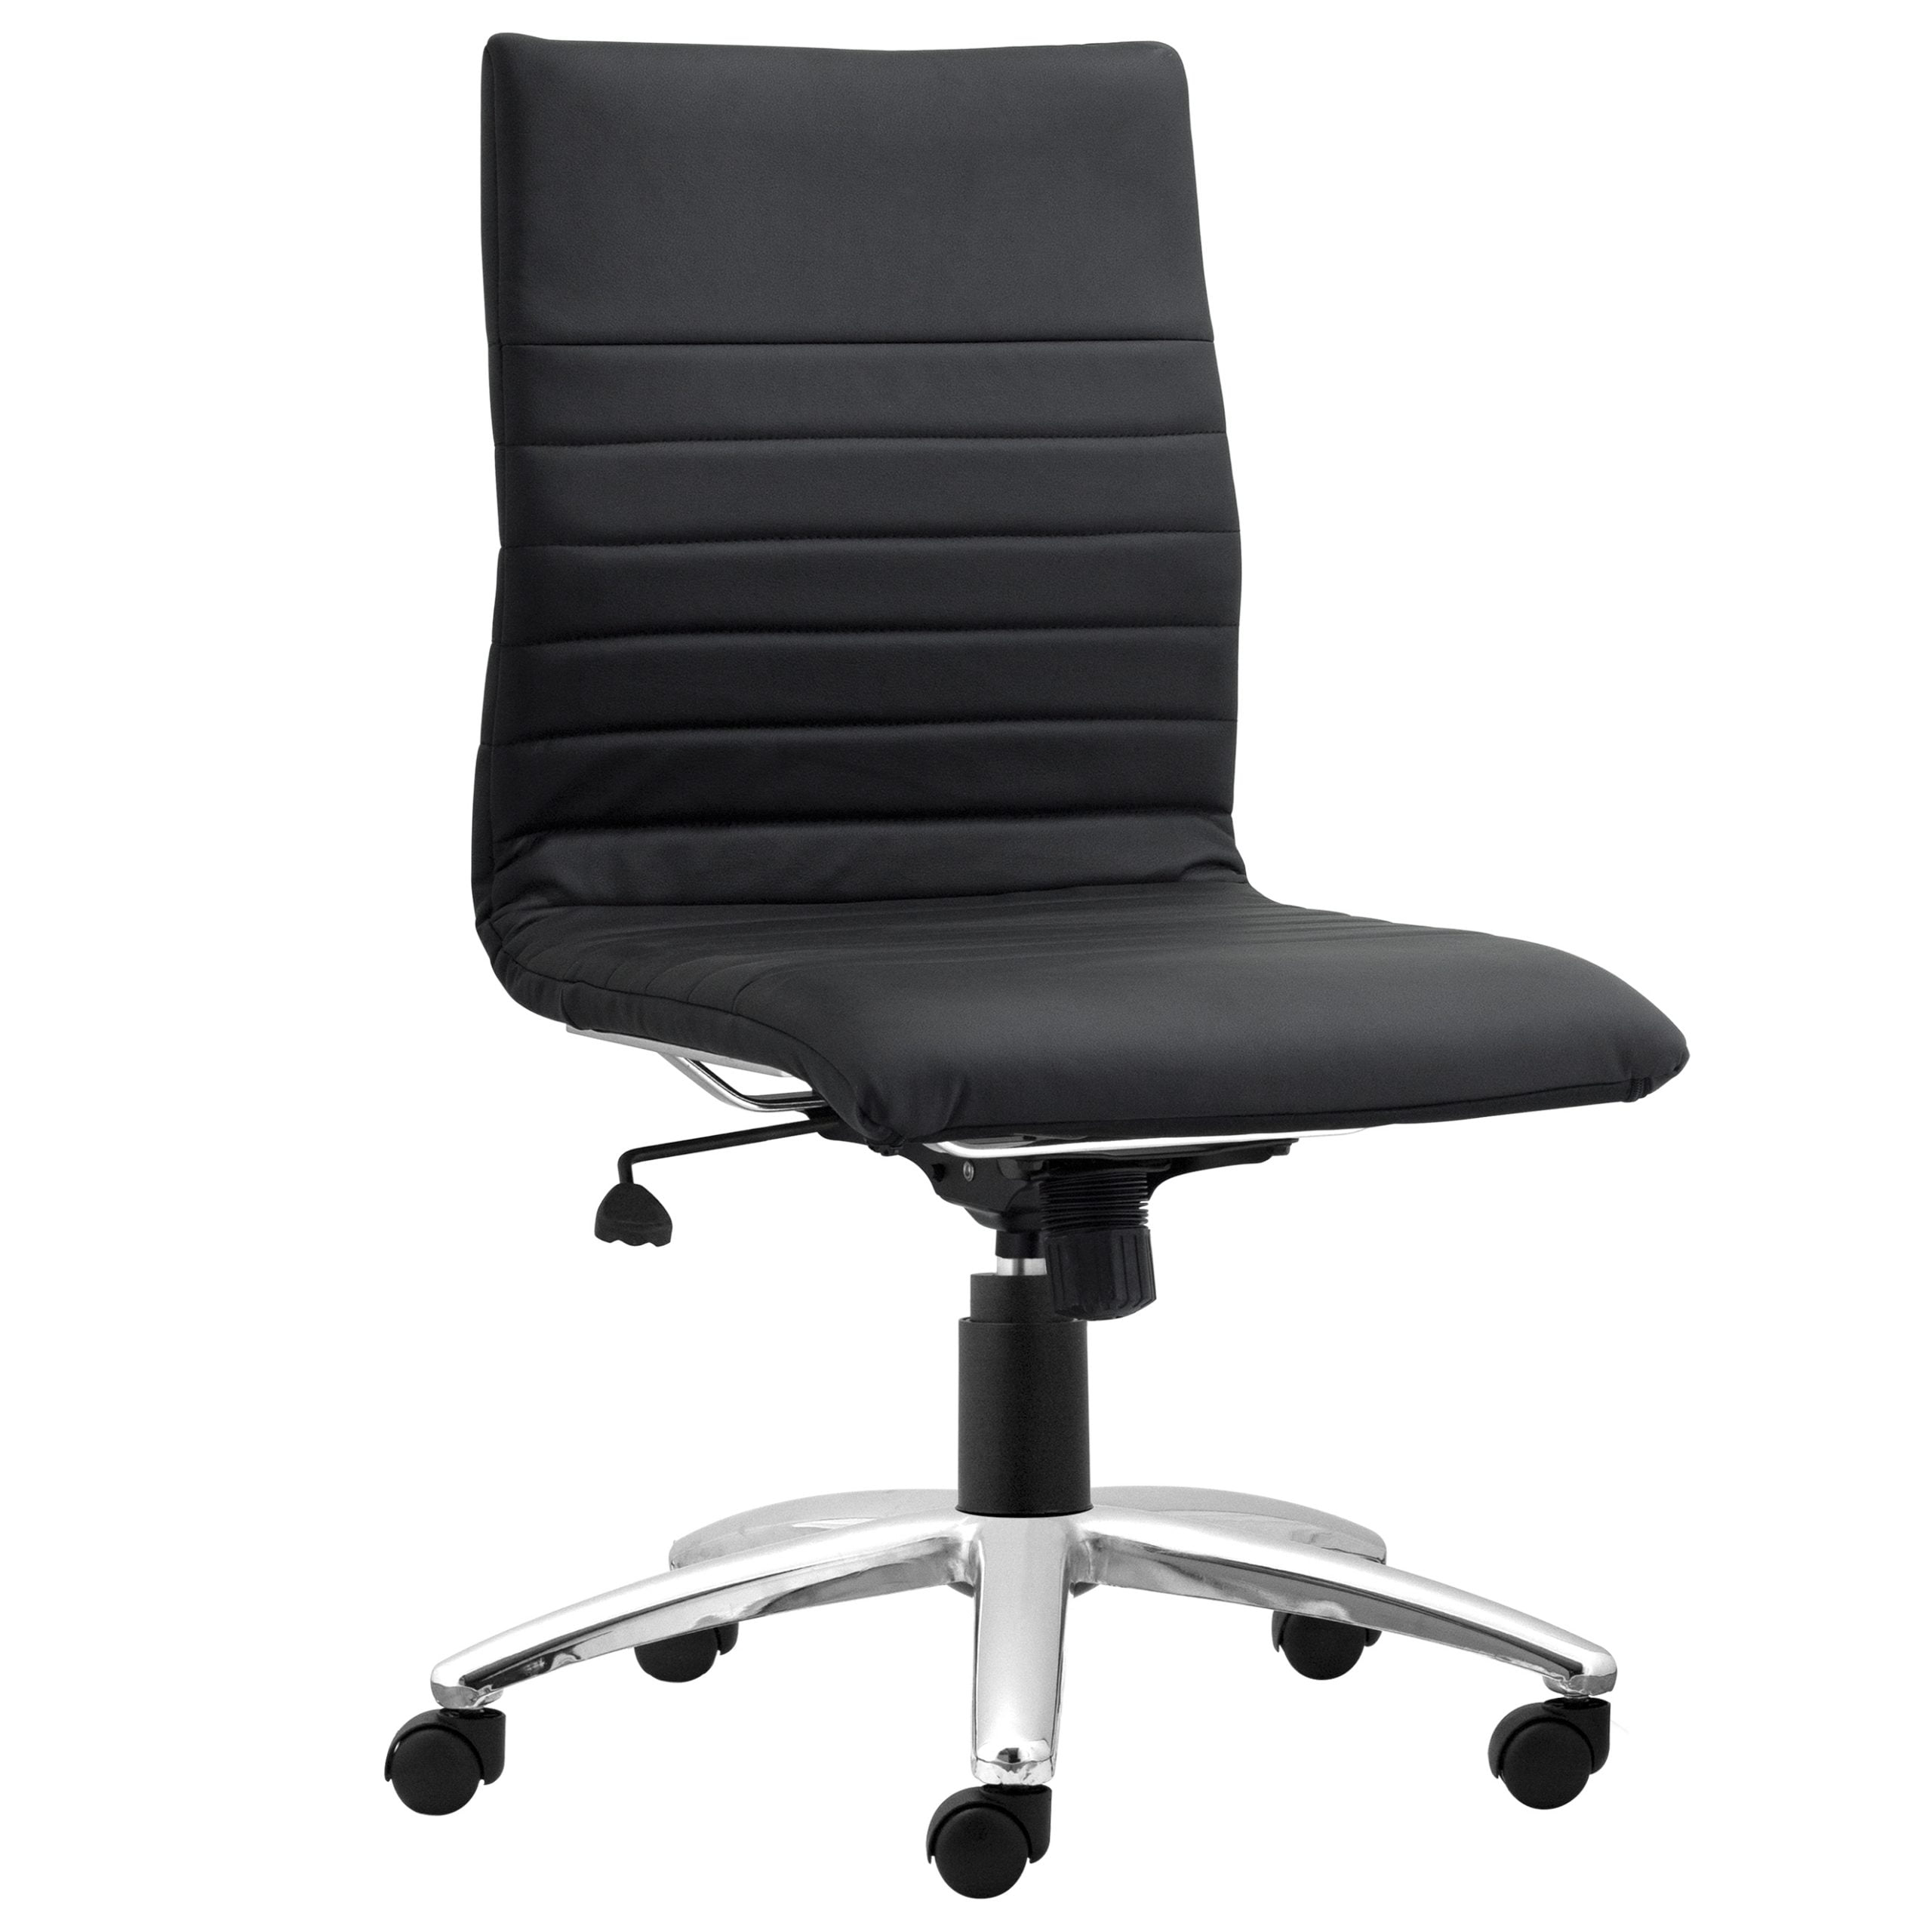 Modena Armless Task Chair - Black